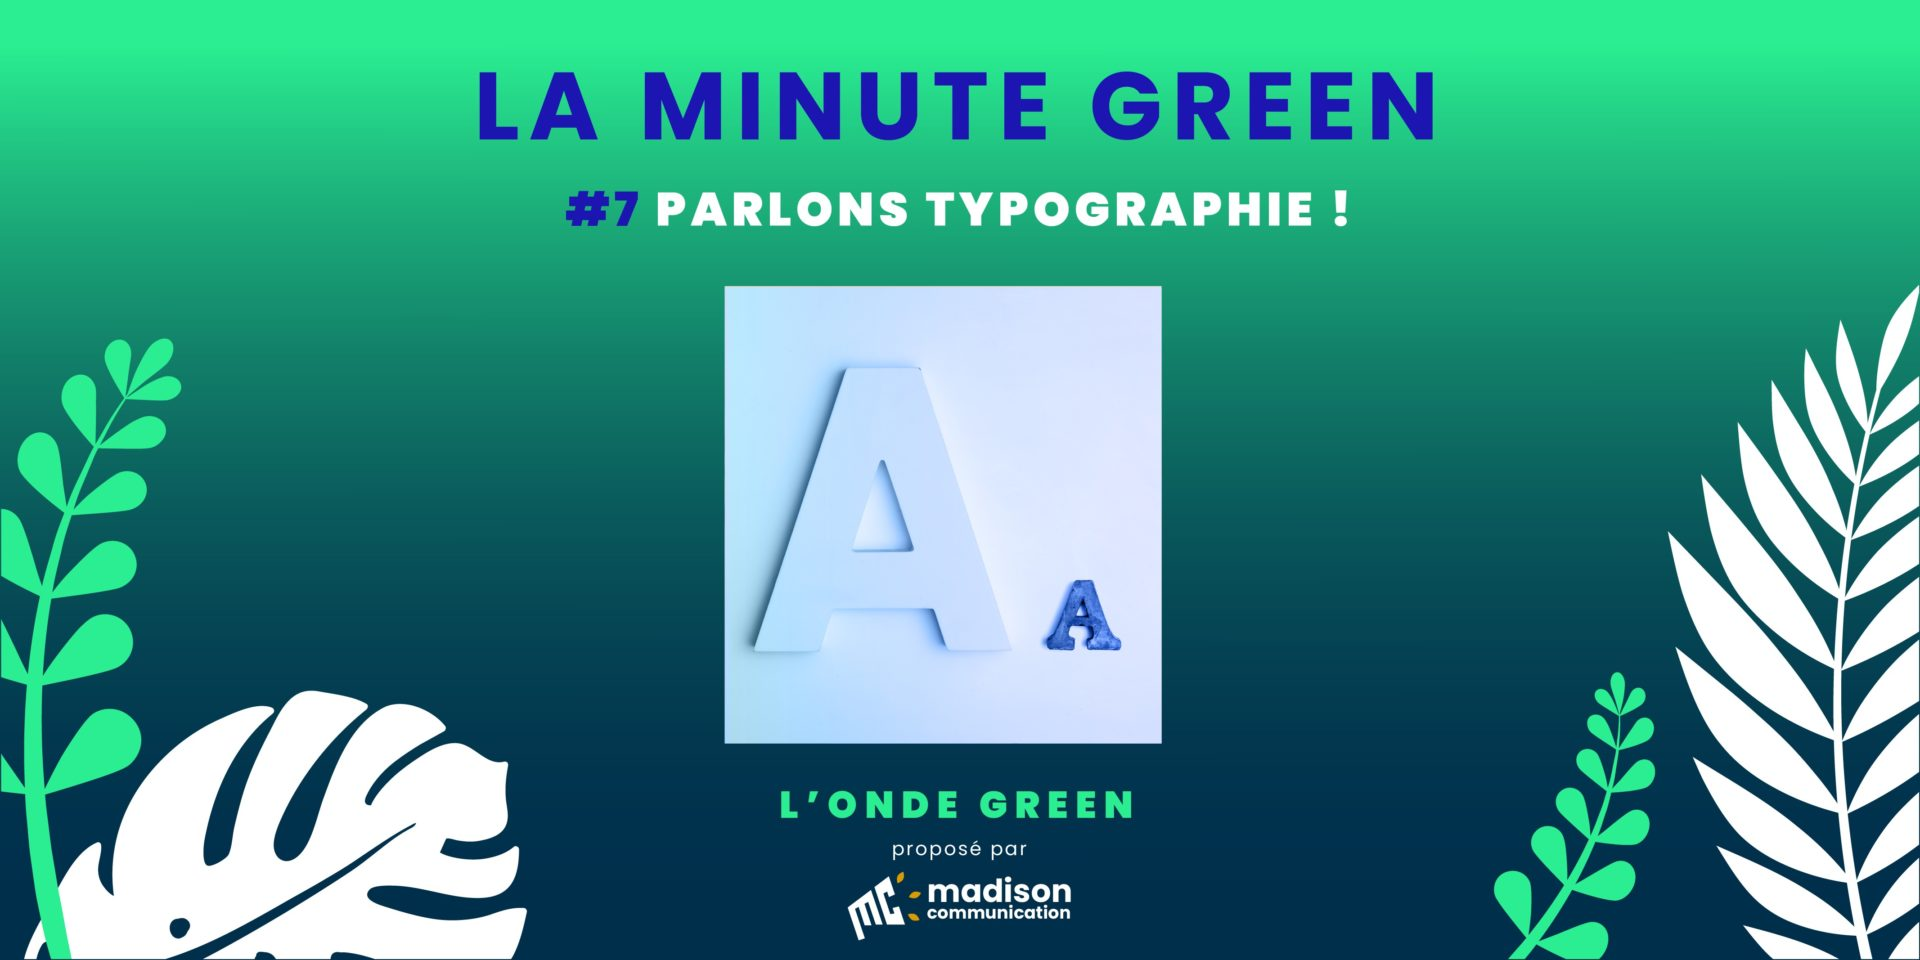 Podcast L'onde Green / Minute Green #7 – Parlons typographie !